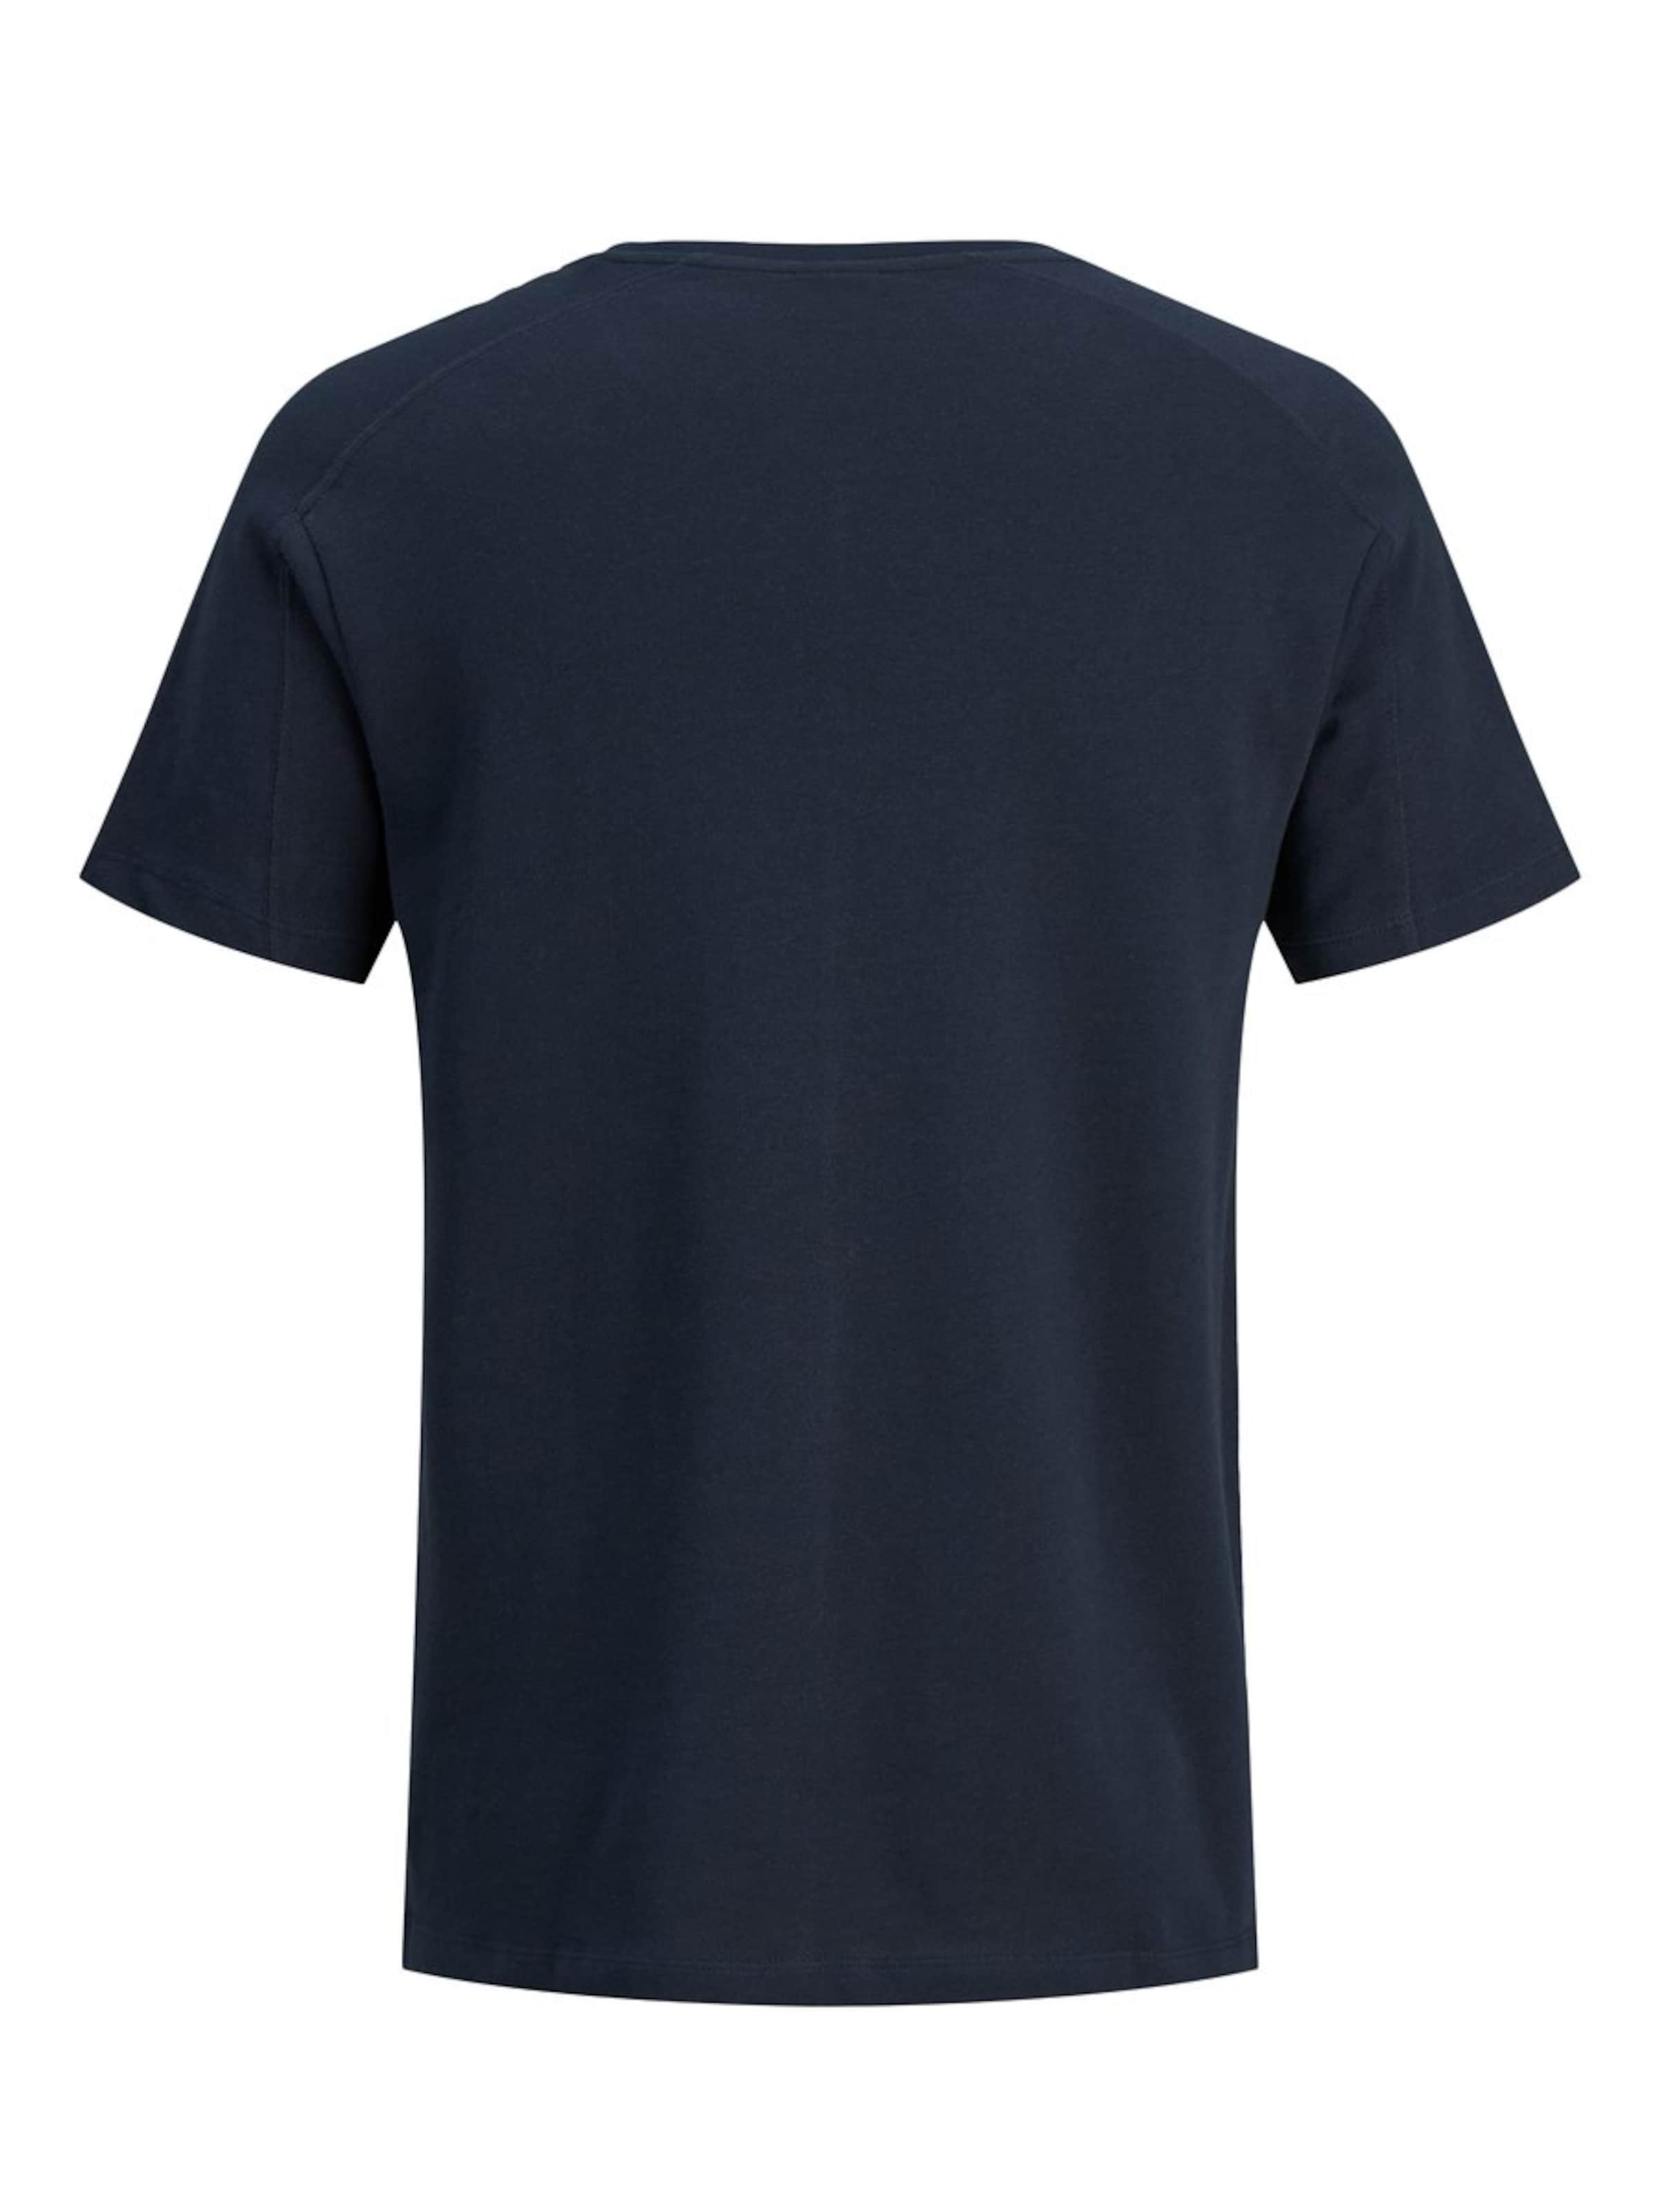 Marine En Jones T Bleu Jackamp; shirt Ybfg67y